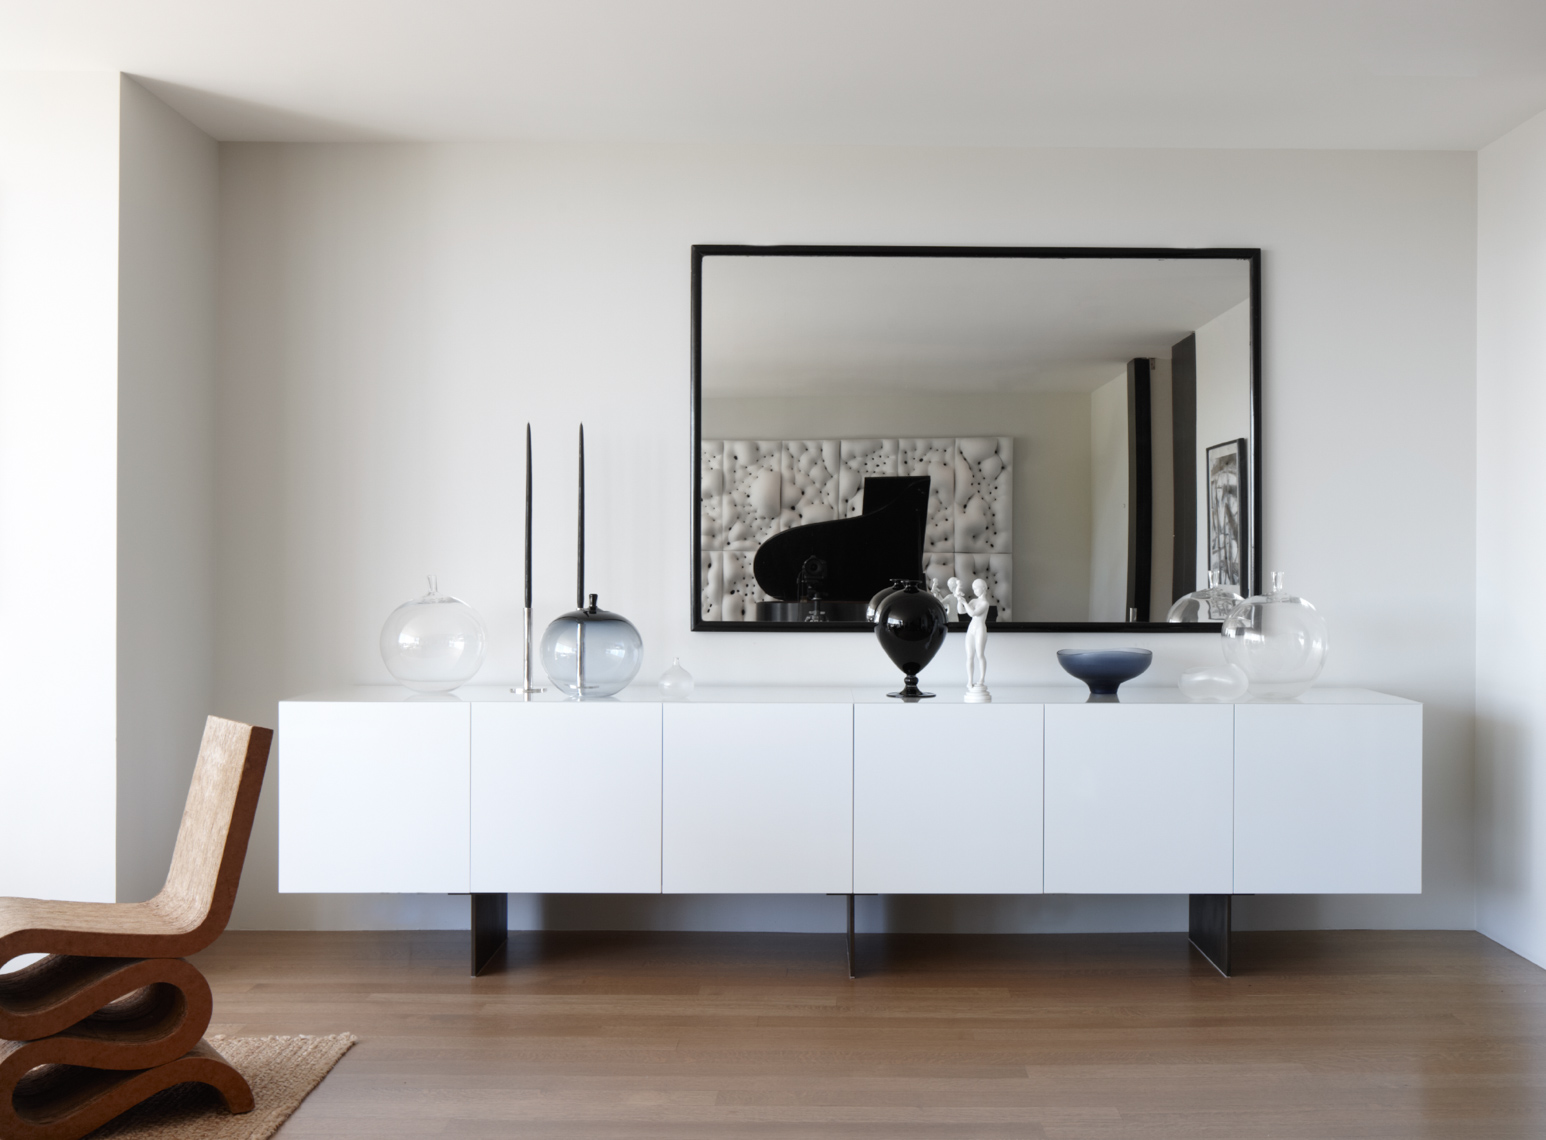 modern living room interior with white sideboard and glassware below a mirror San Francisco interior photographer